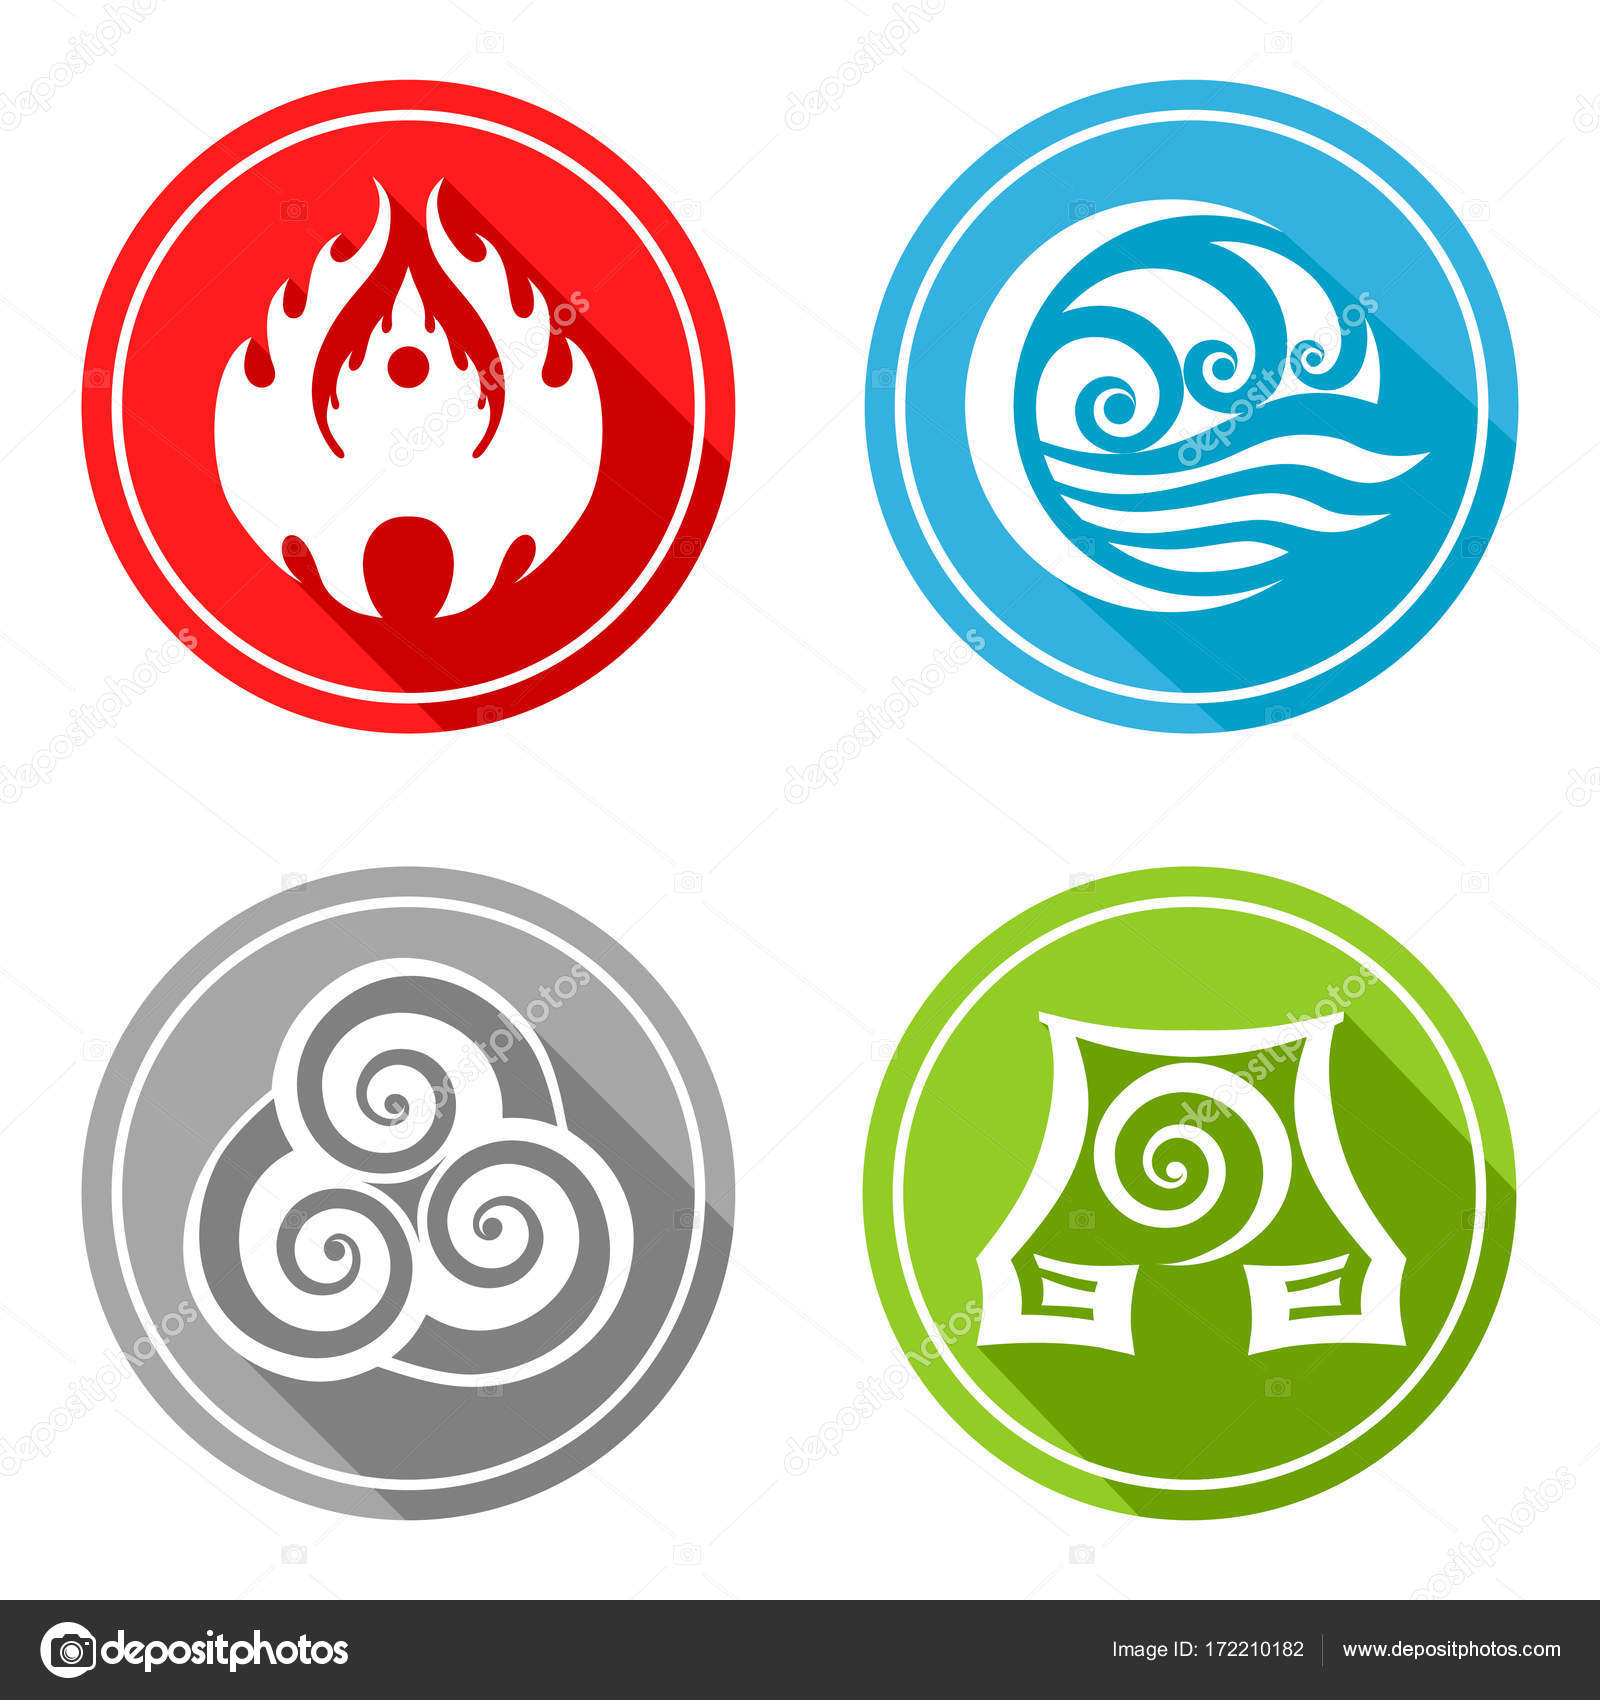 Four Basic Elements Slavic Symbols Fire Water Earth And Air